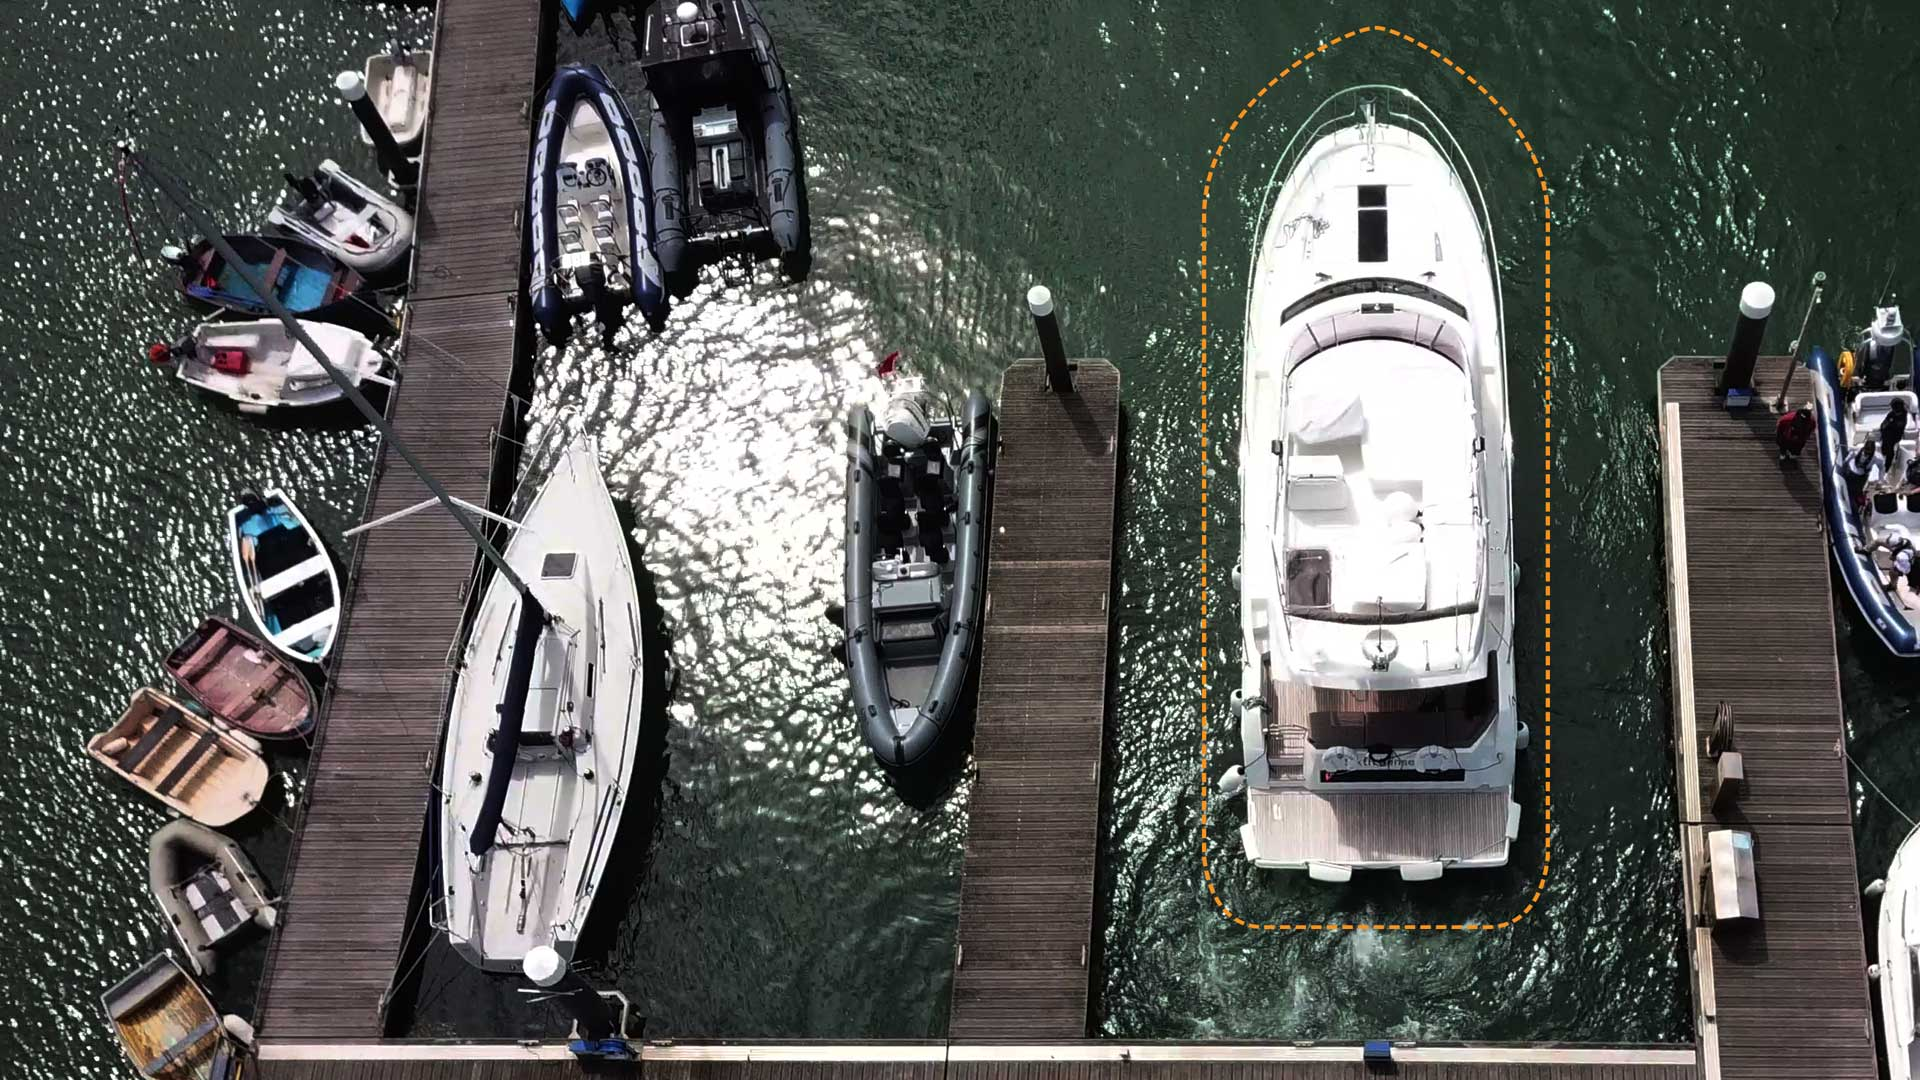 DockSense - The Docking Challenge | Raymarine - A Brand by FLIR